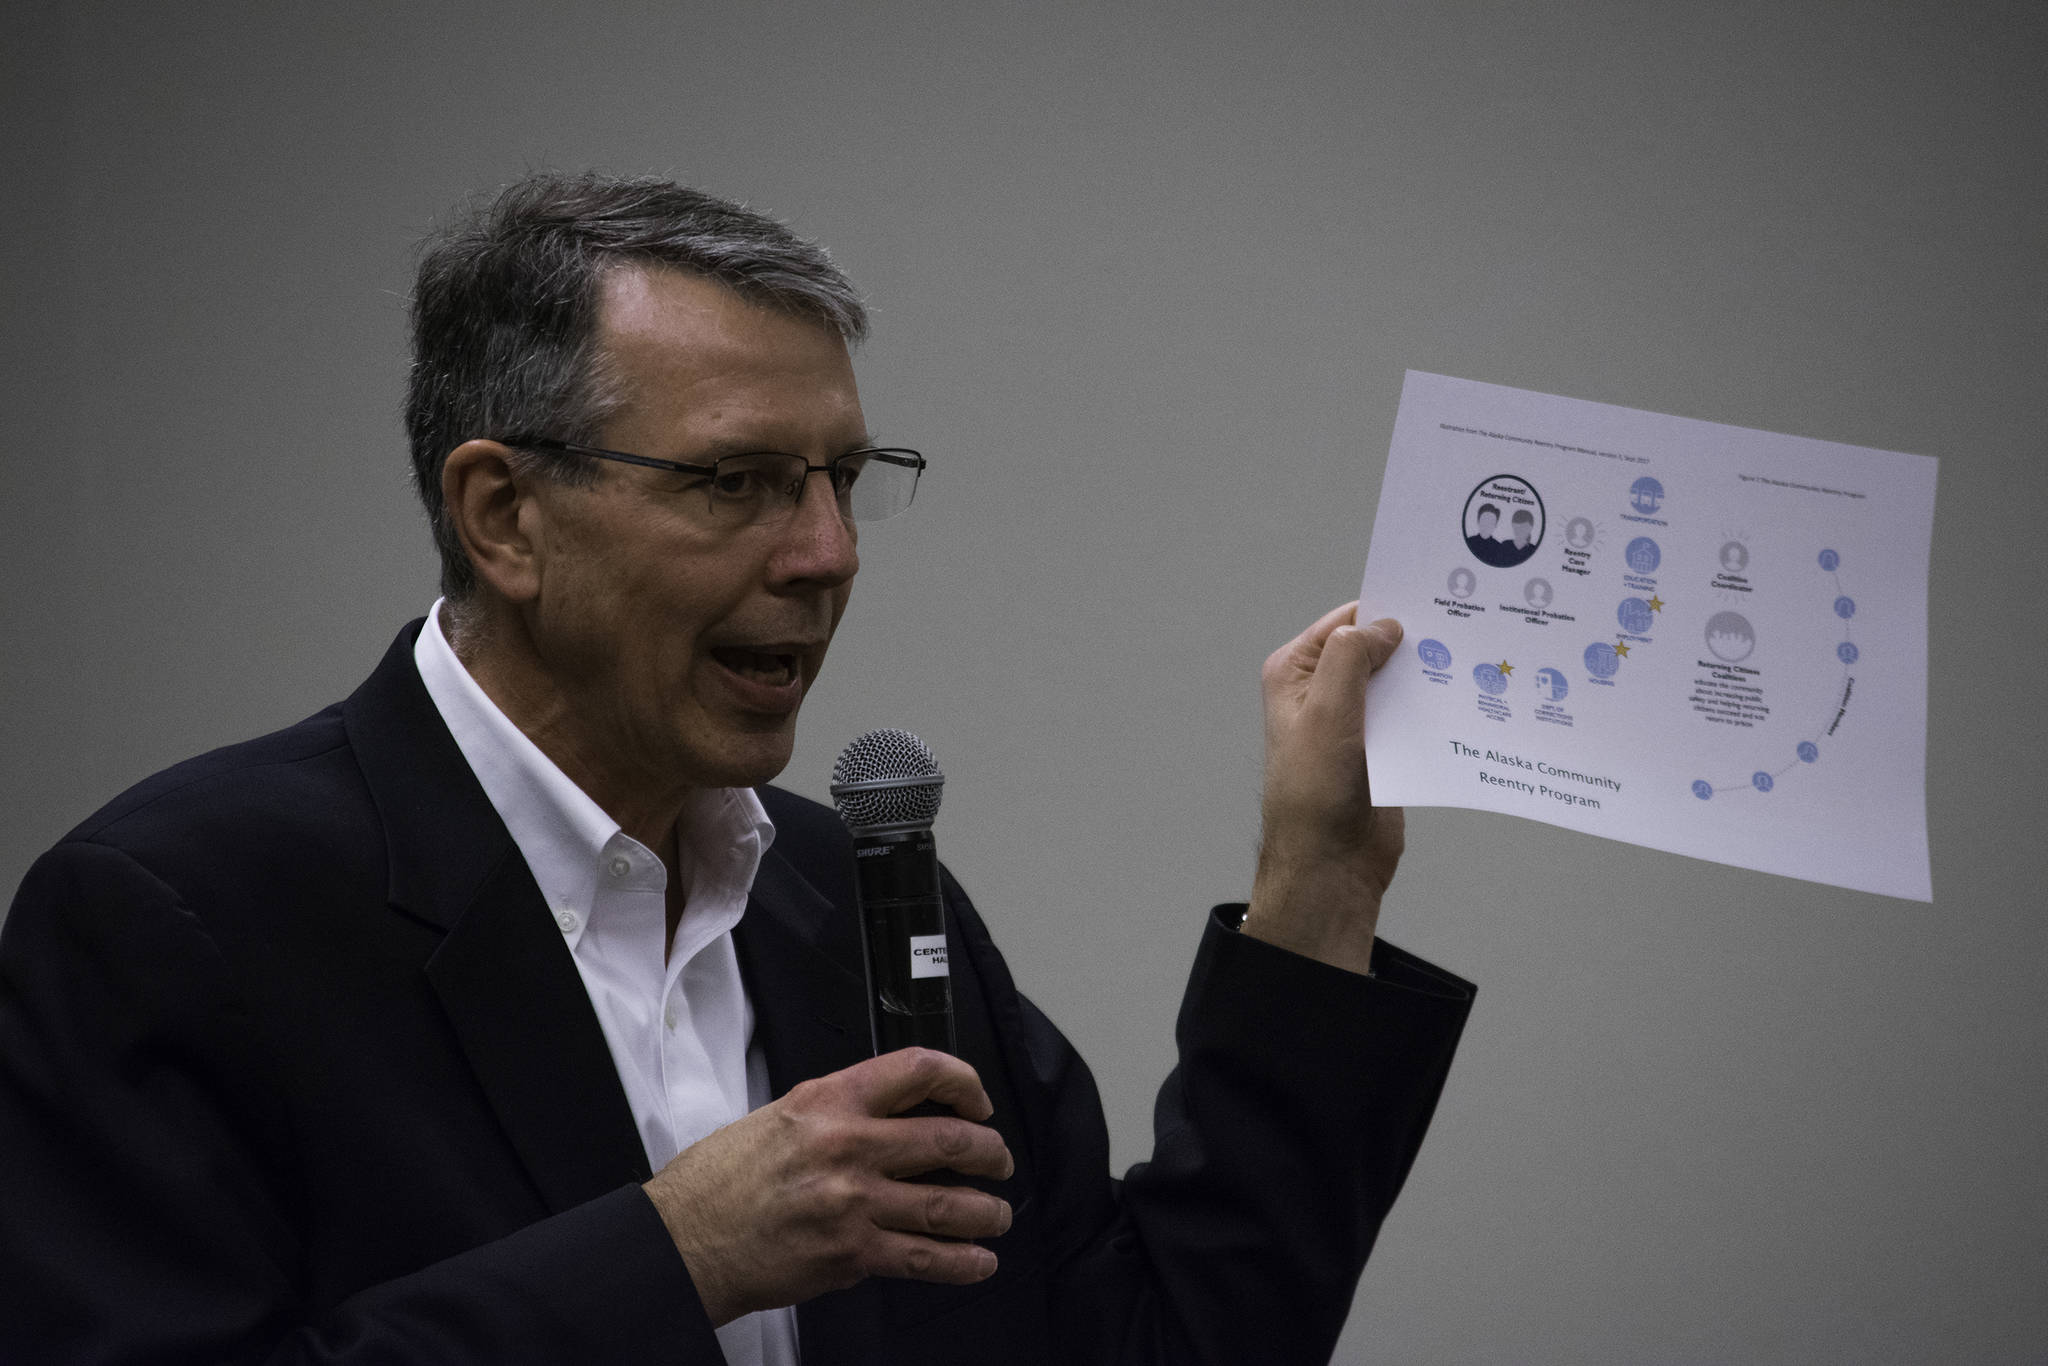 Donald Habeger, community coordinator for the Juneau Reentry Coalition, opens a community meeting addressing the barriers to housing that post-incarcerated people in Juneau face. The meeting took place at Centennial Hall on Wednesday, April 18, 2018. (Richard McGrail | Juneau Empire File)